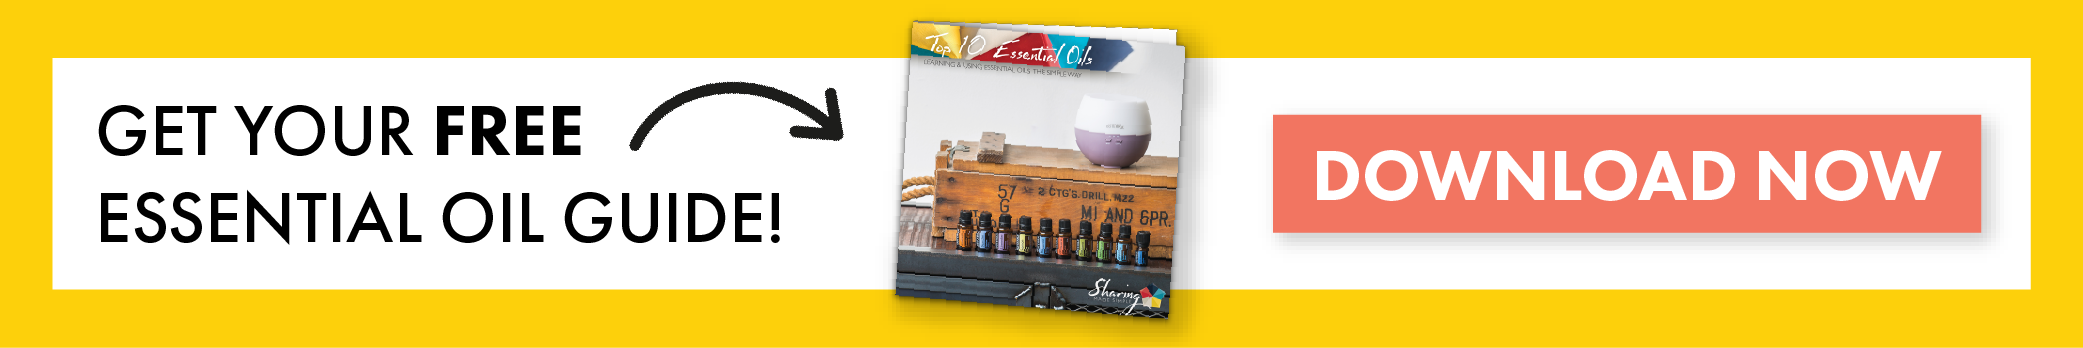 Get Your Free Top 10 doTERRA Essential oil Guide